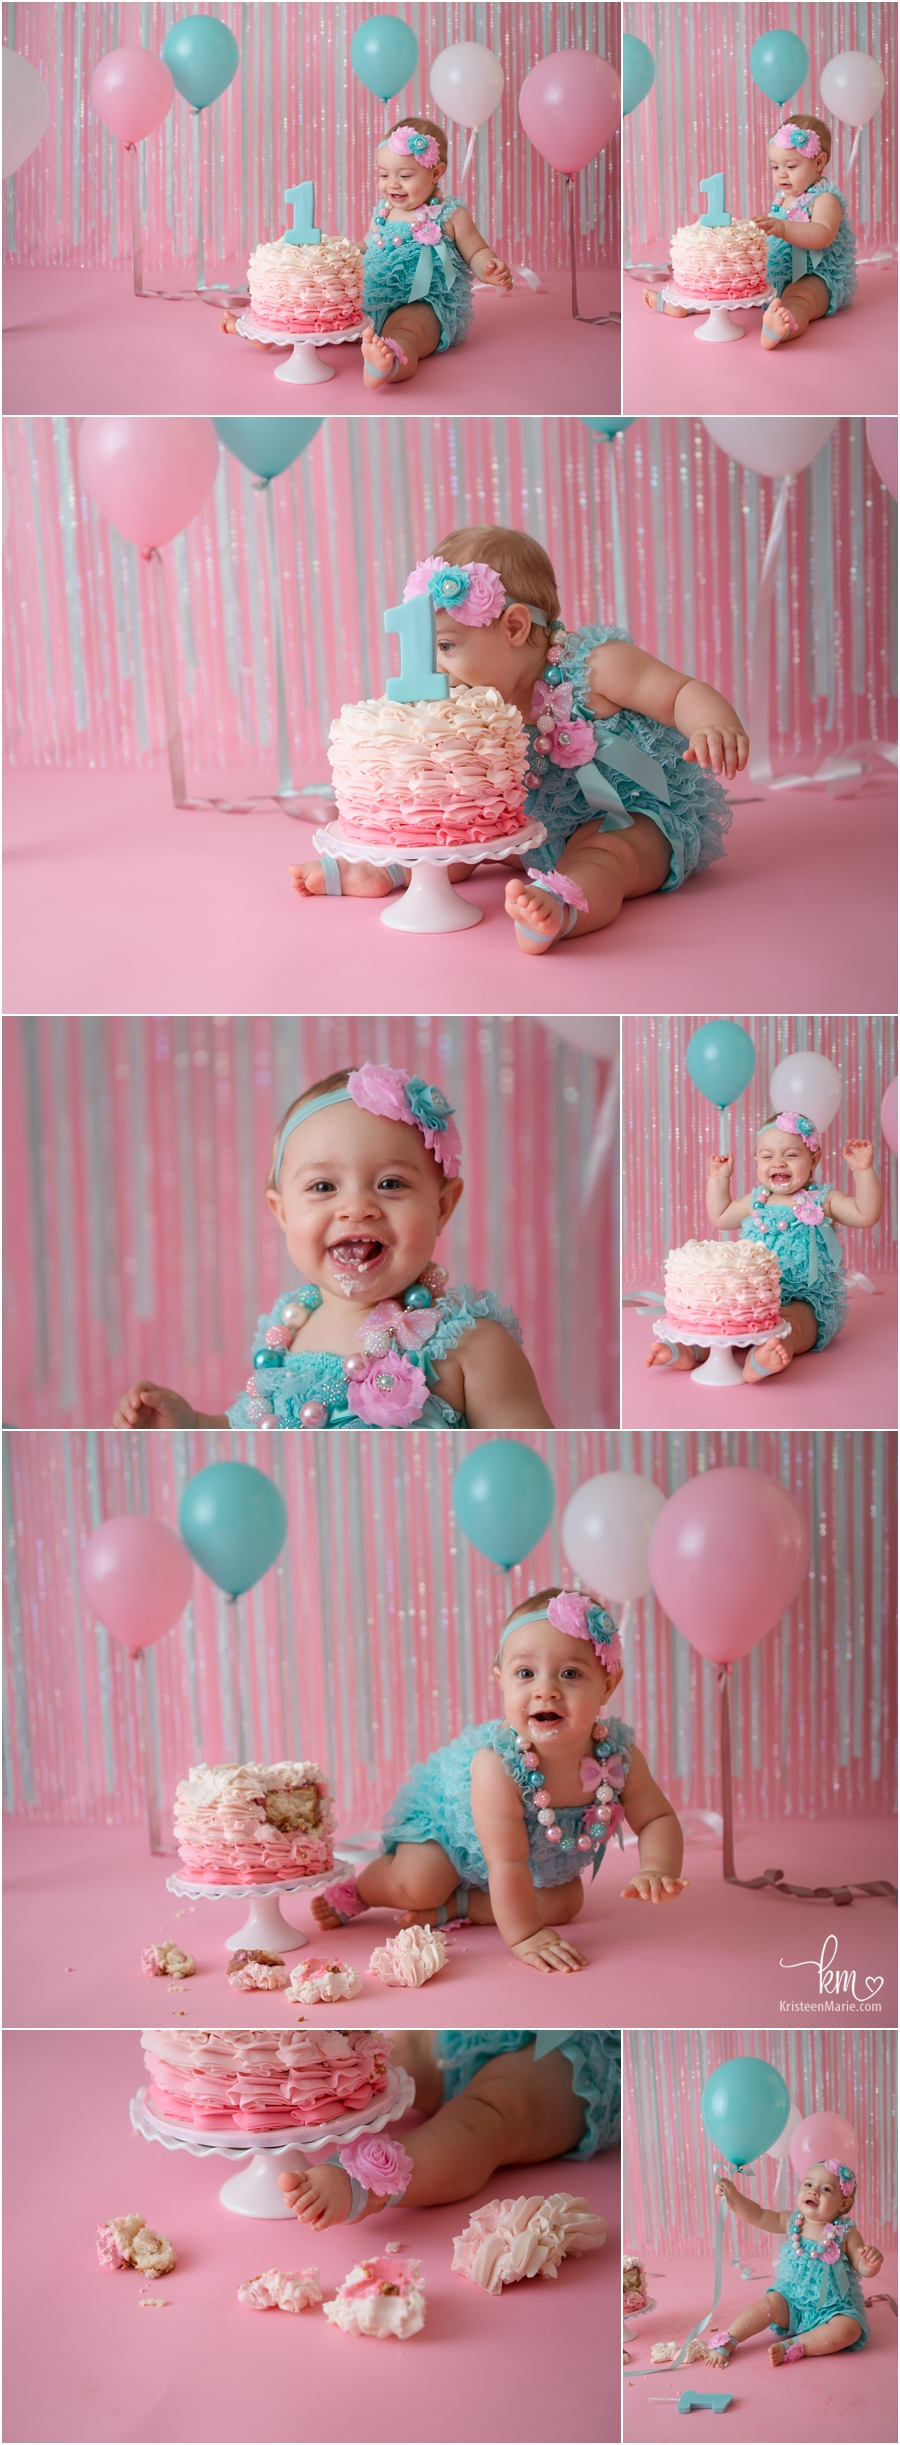 pink and teal 1st birthday smash cake - adorable cake smash session!